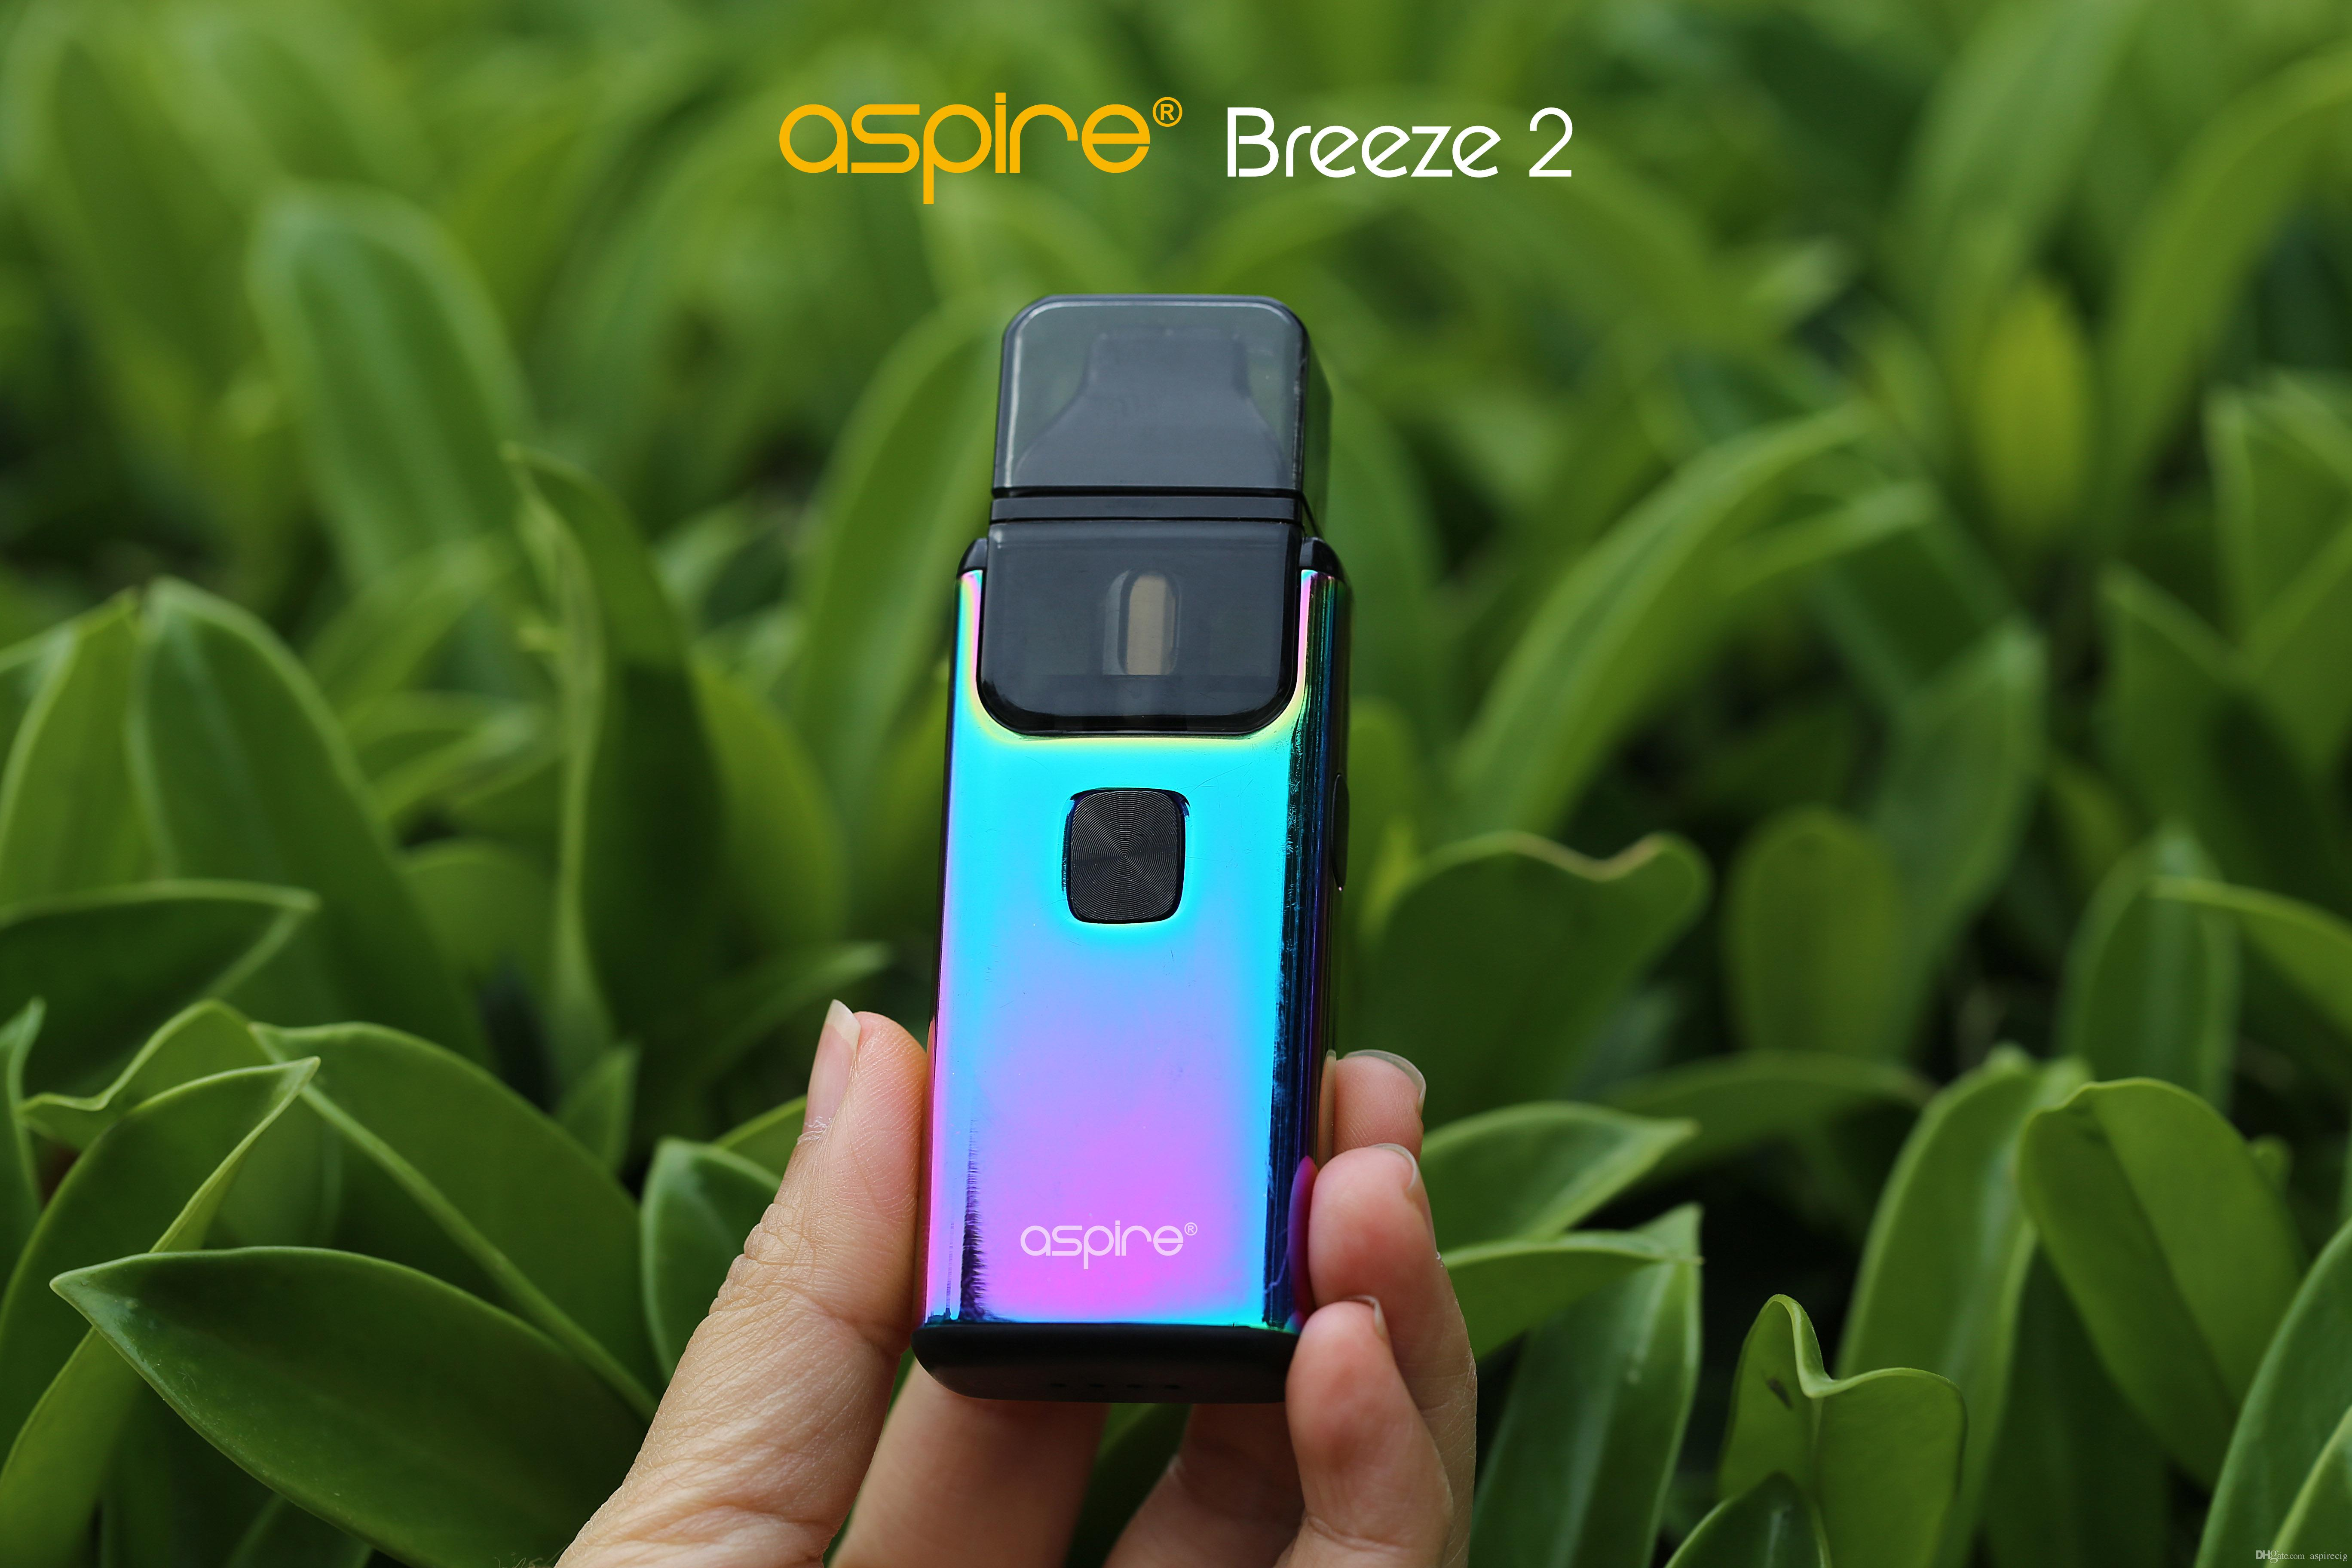 New Color Original Aspire Breeze 2 kit (AIO) 2ml(TPD) Capacity 1000mAh Battery refillable pod systems child-lock & leakproof e cigarettes